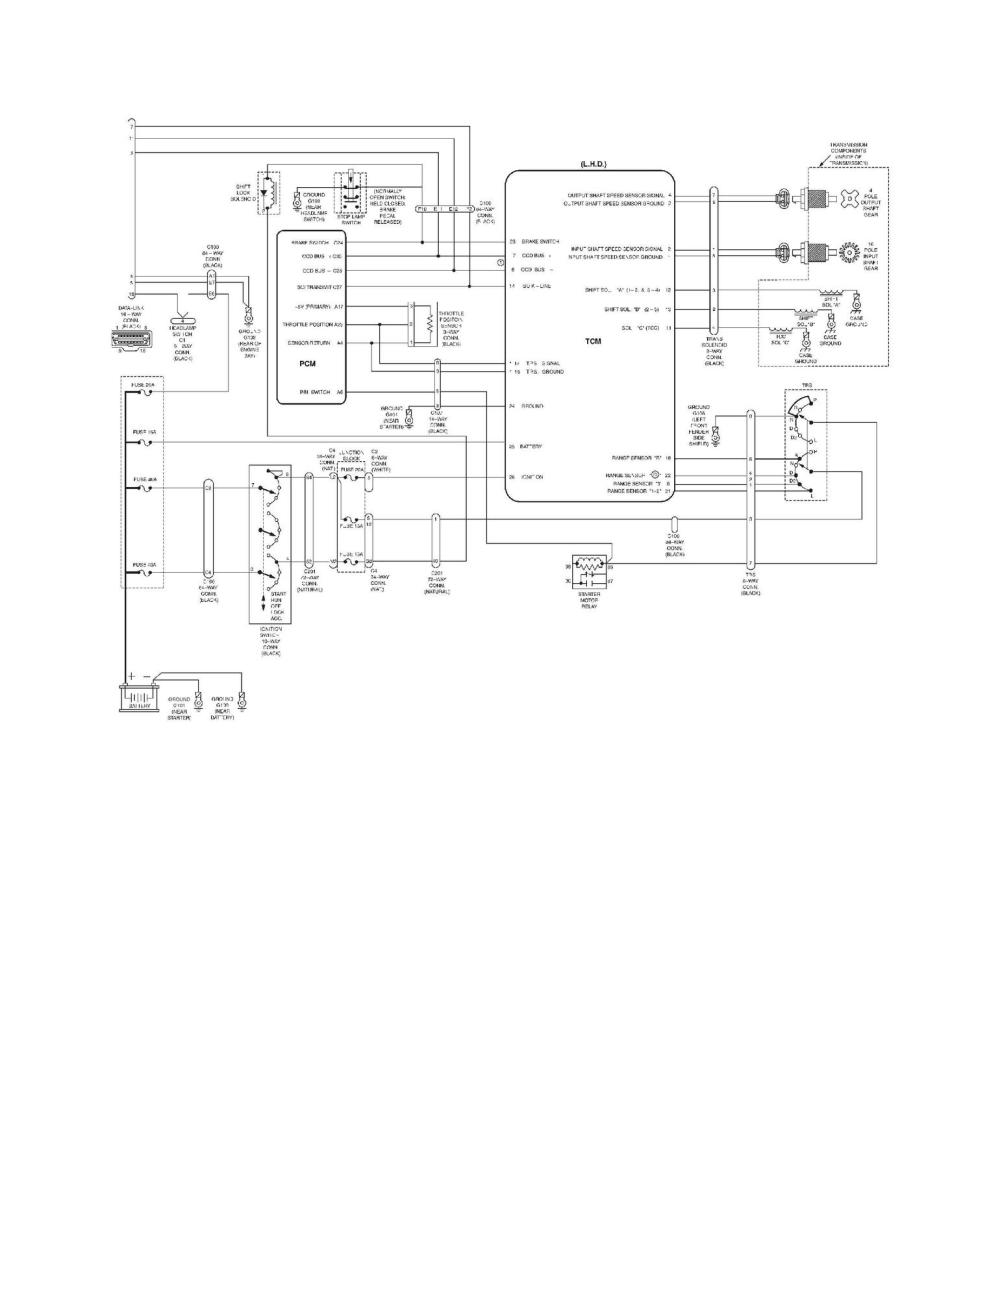 medium resolution of 1994 jeep yj schematics jeep wiring diagrams instructions p0740 obd ii extraordinary p0740 jeep grand cherokee